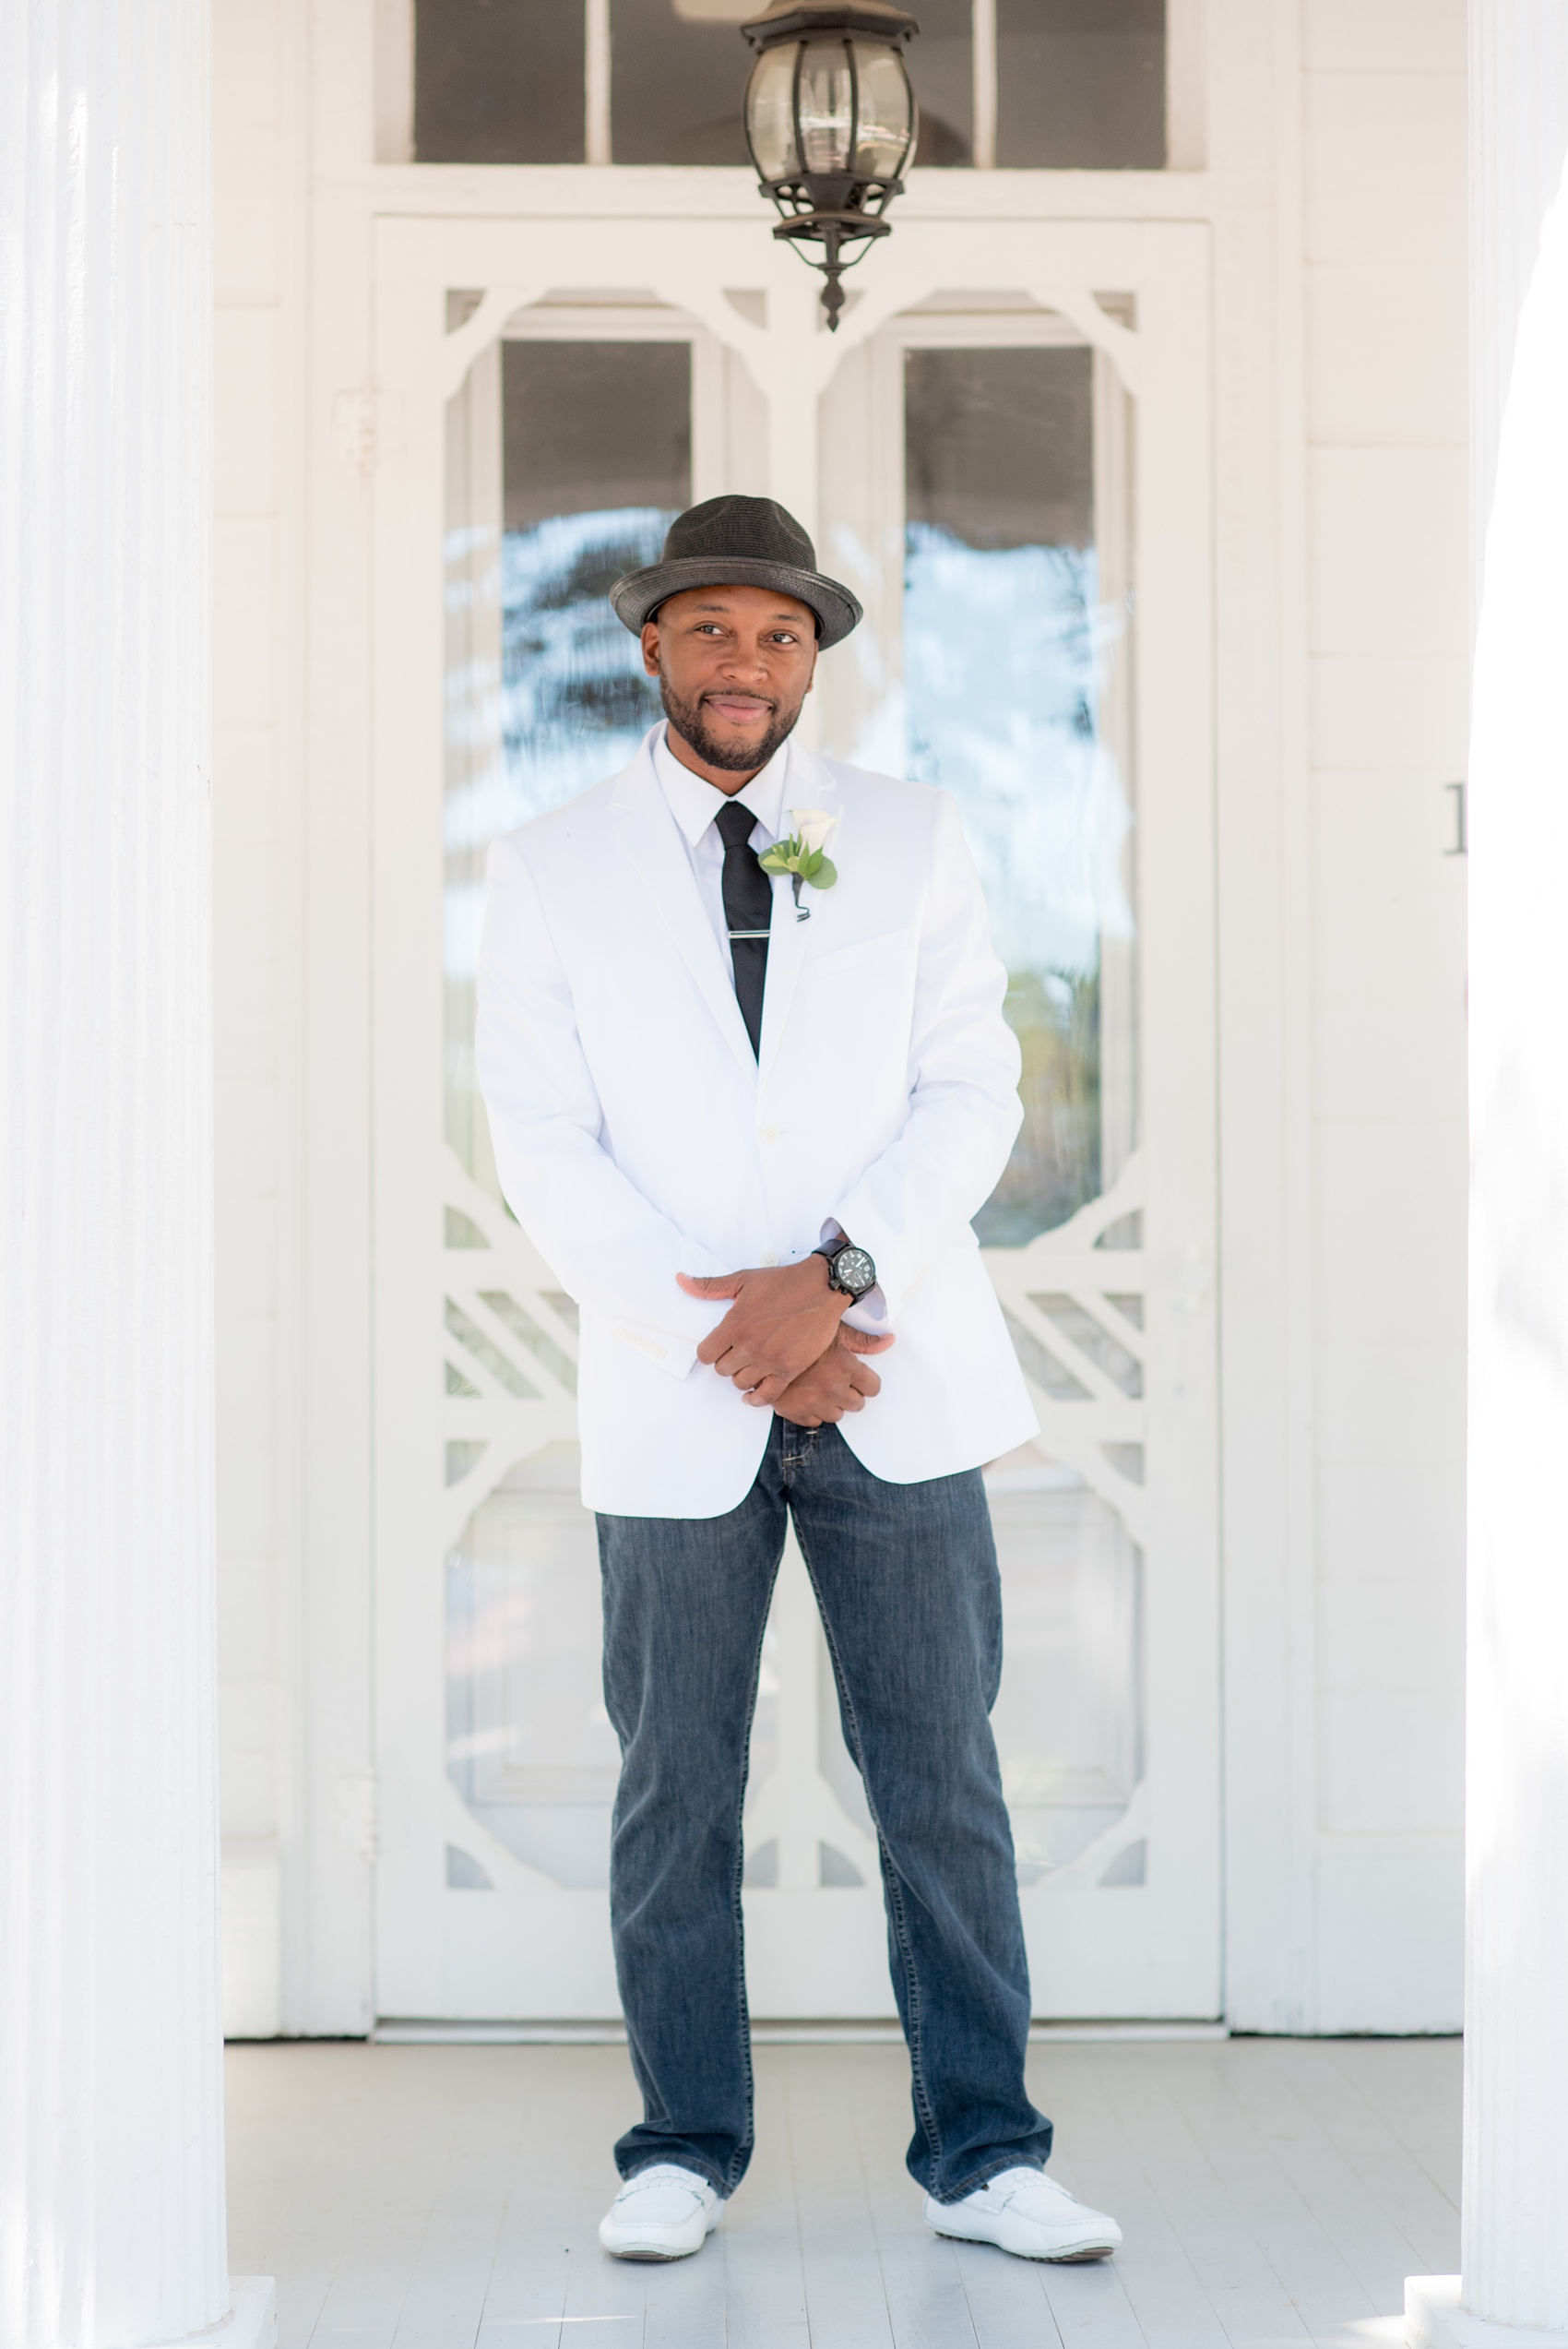 Mikkel Paige Photography pictures of a wedding at Leslie-Alford Mim's House in North Carolina for a Mad Dash Weddings event. Photo of the groom in a fedora, white coat and black tie, and casual dark jeans.